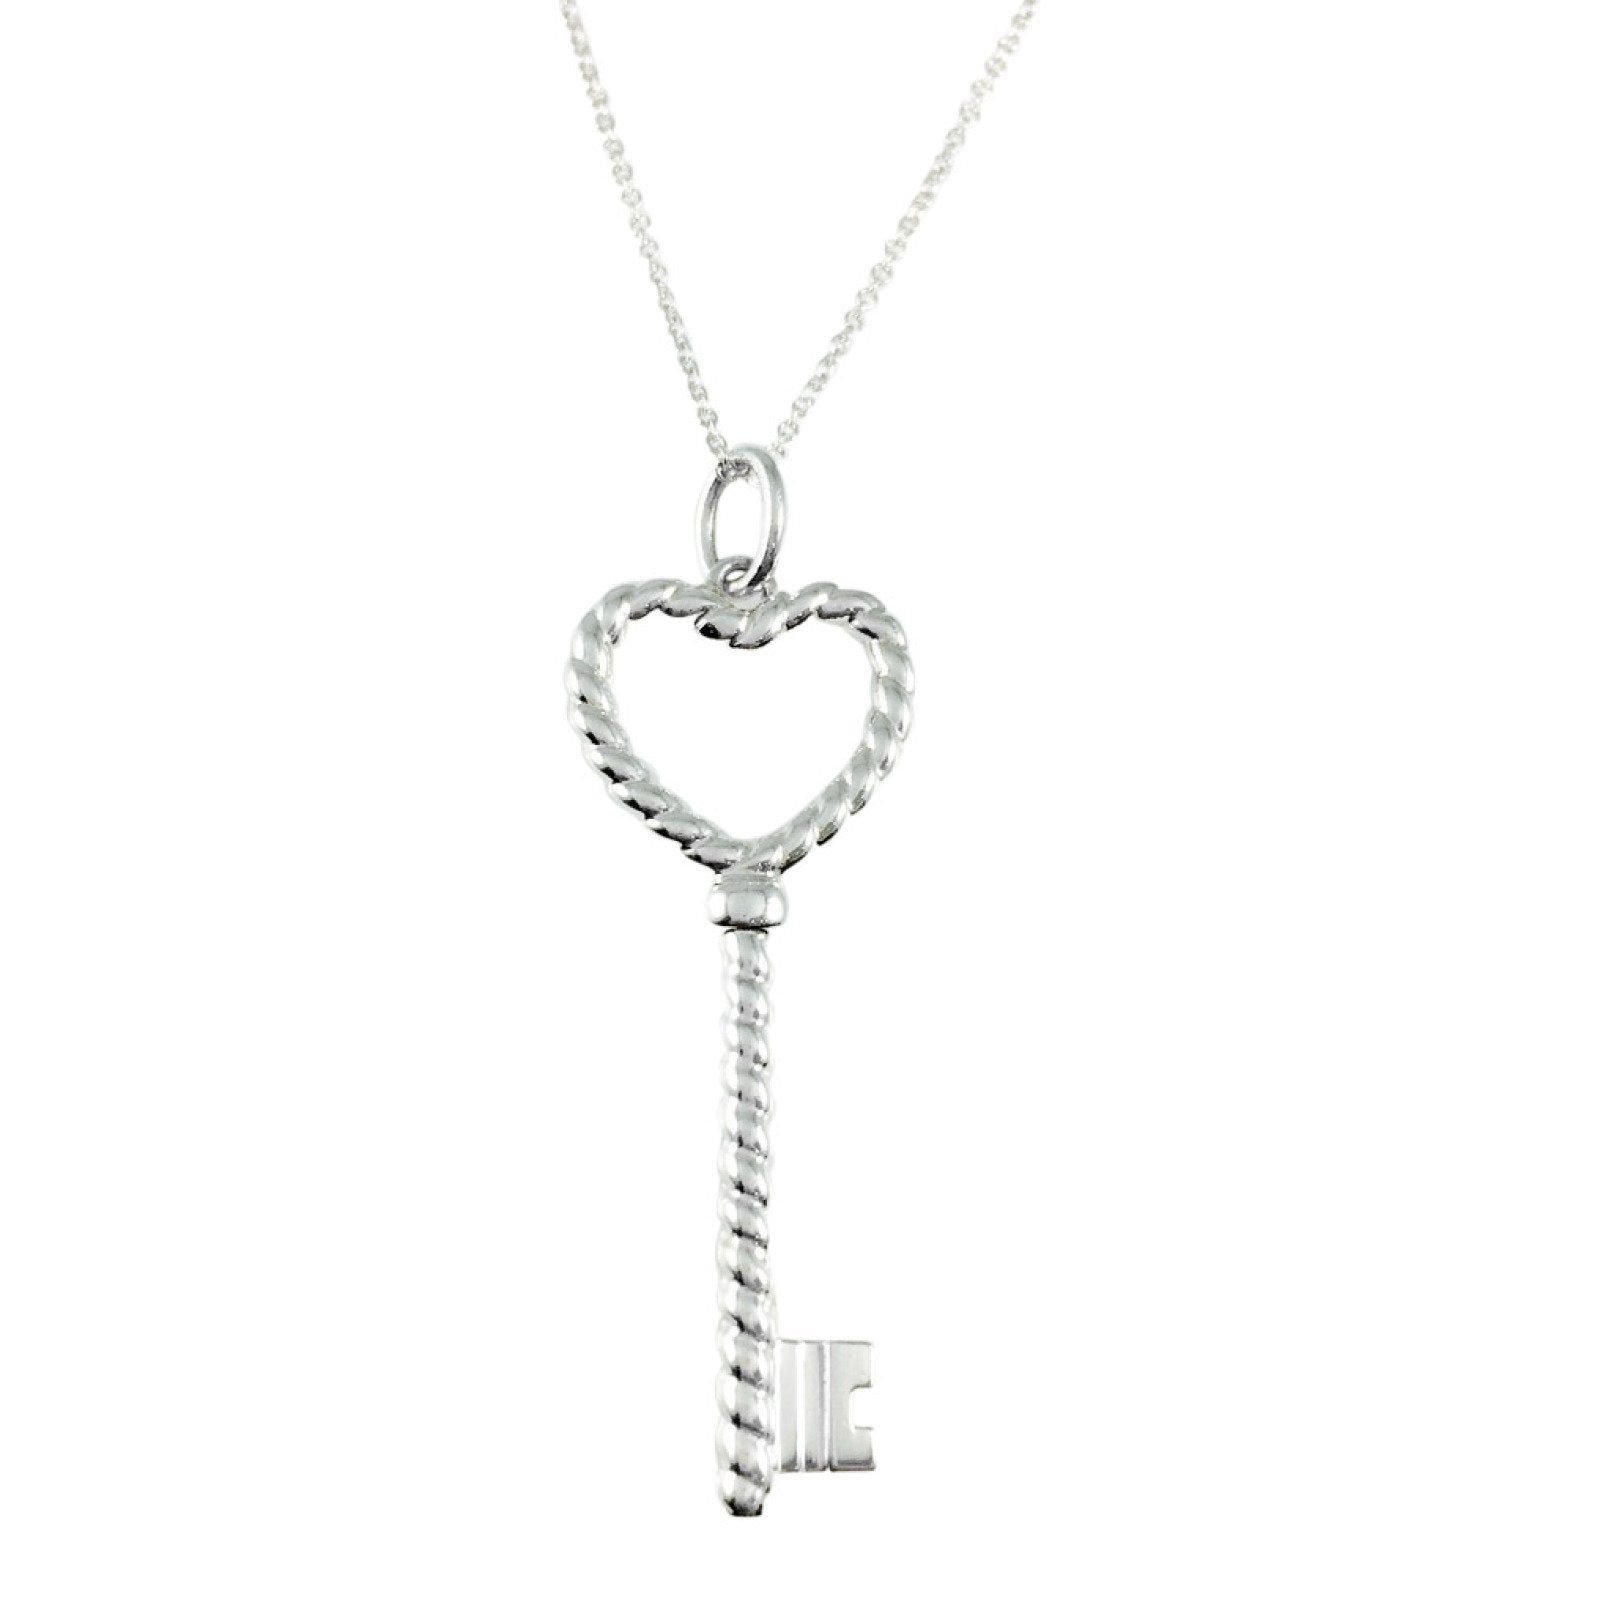 82f50a679 Tiffany & Co. Twist Heart Key Pendant Necklace– Oliver Jewellery